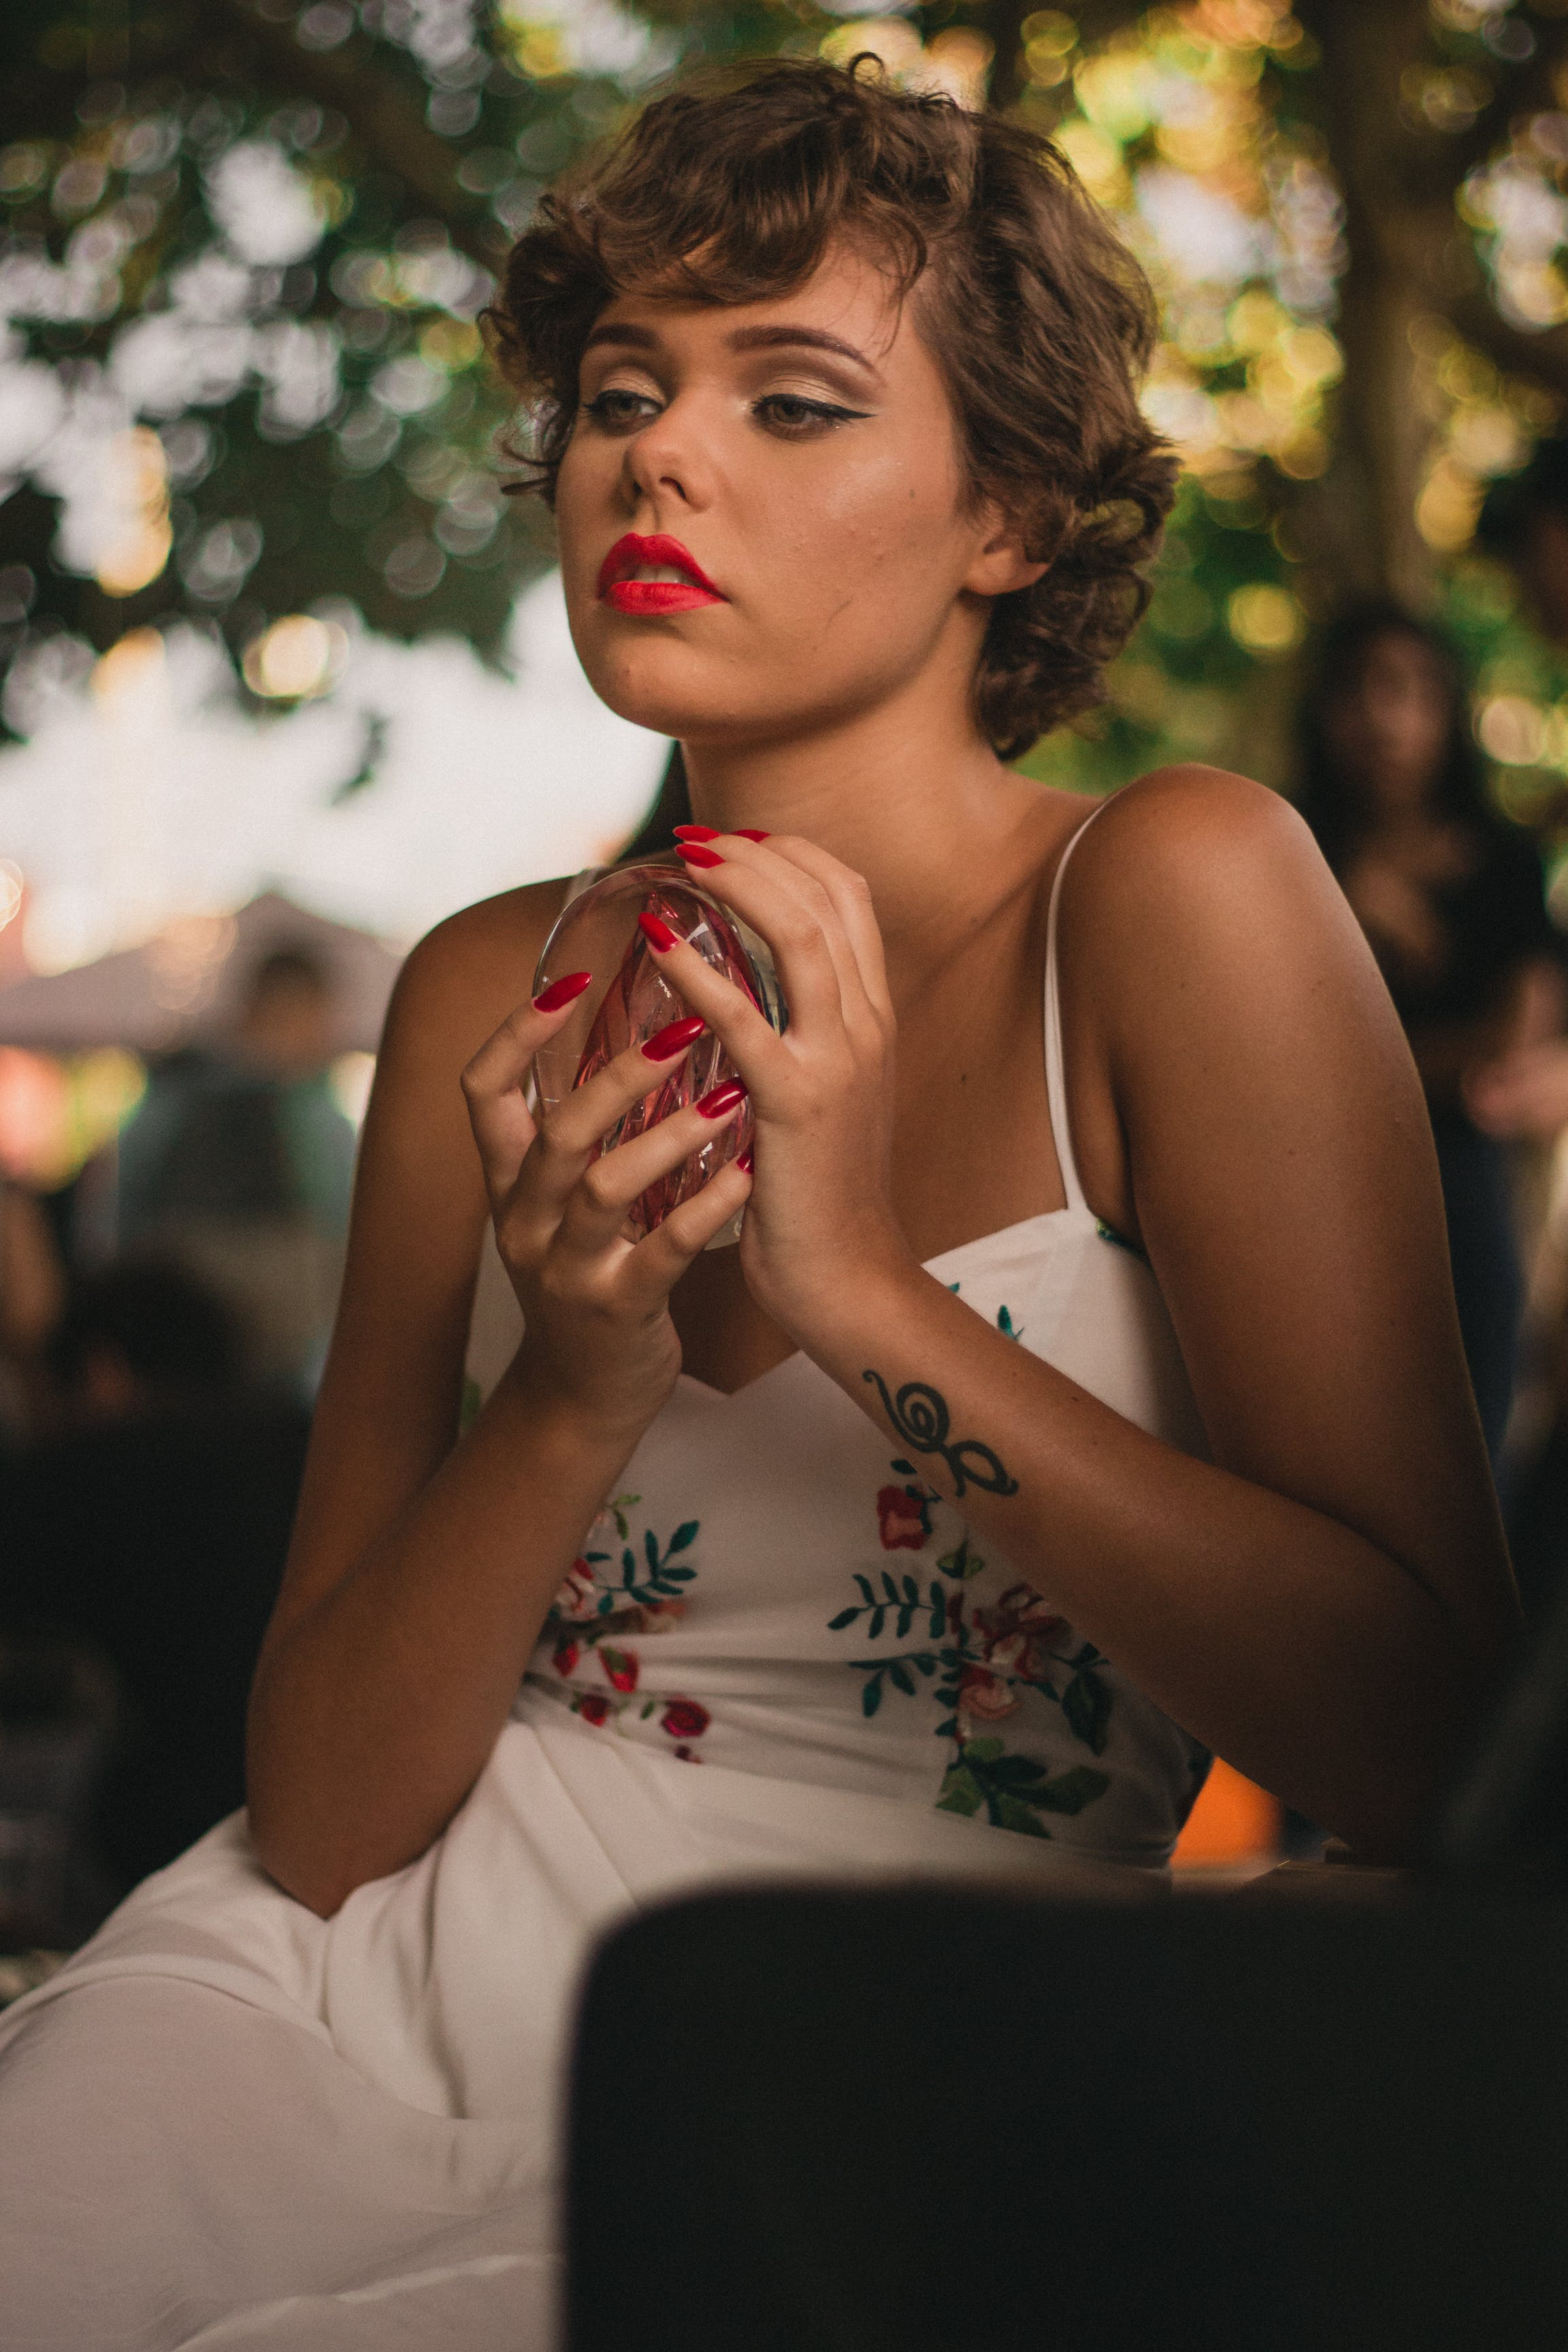 Woman in White Floral Dress